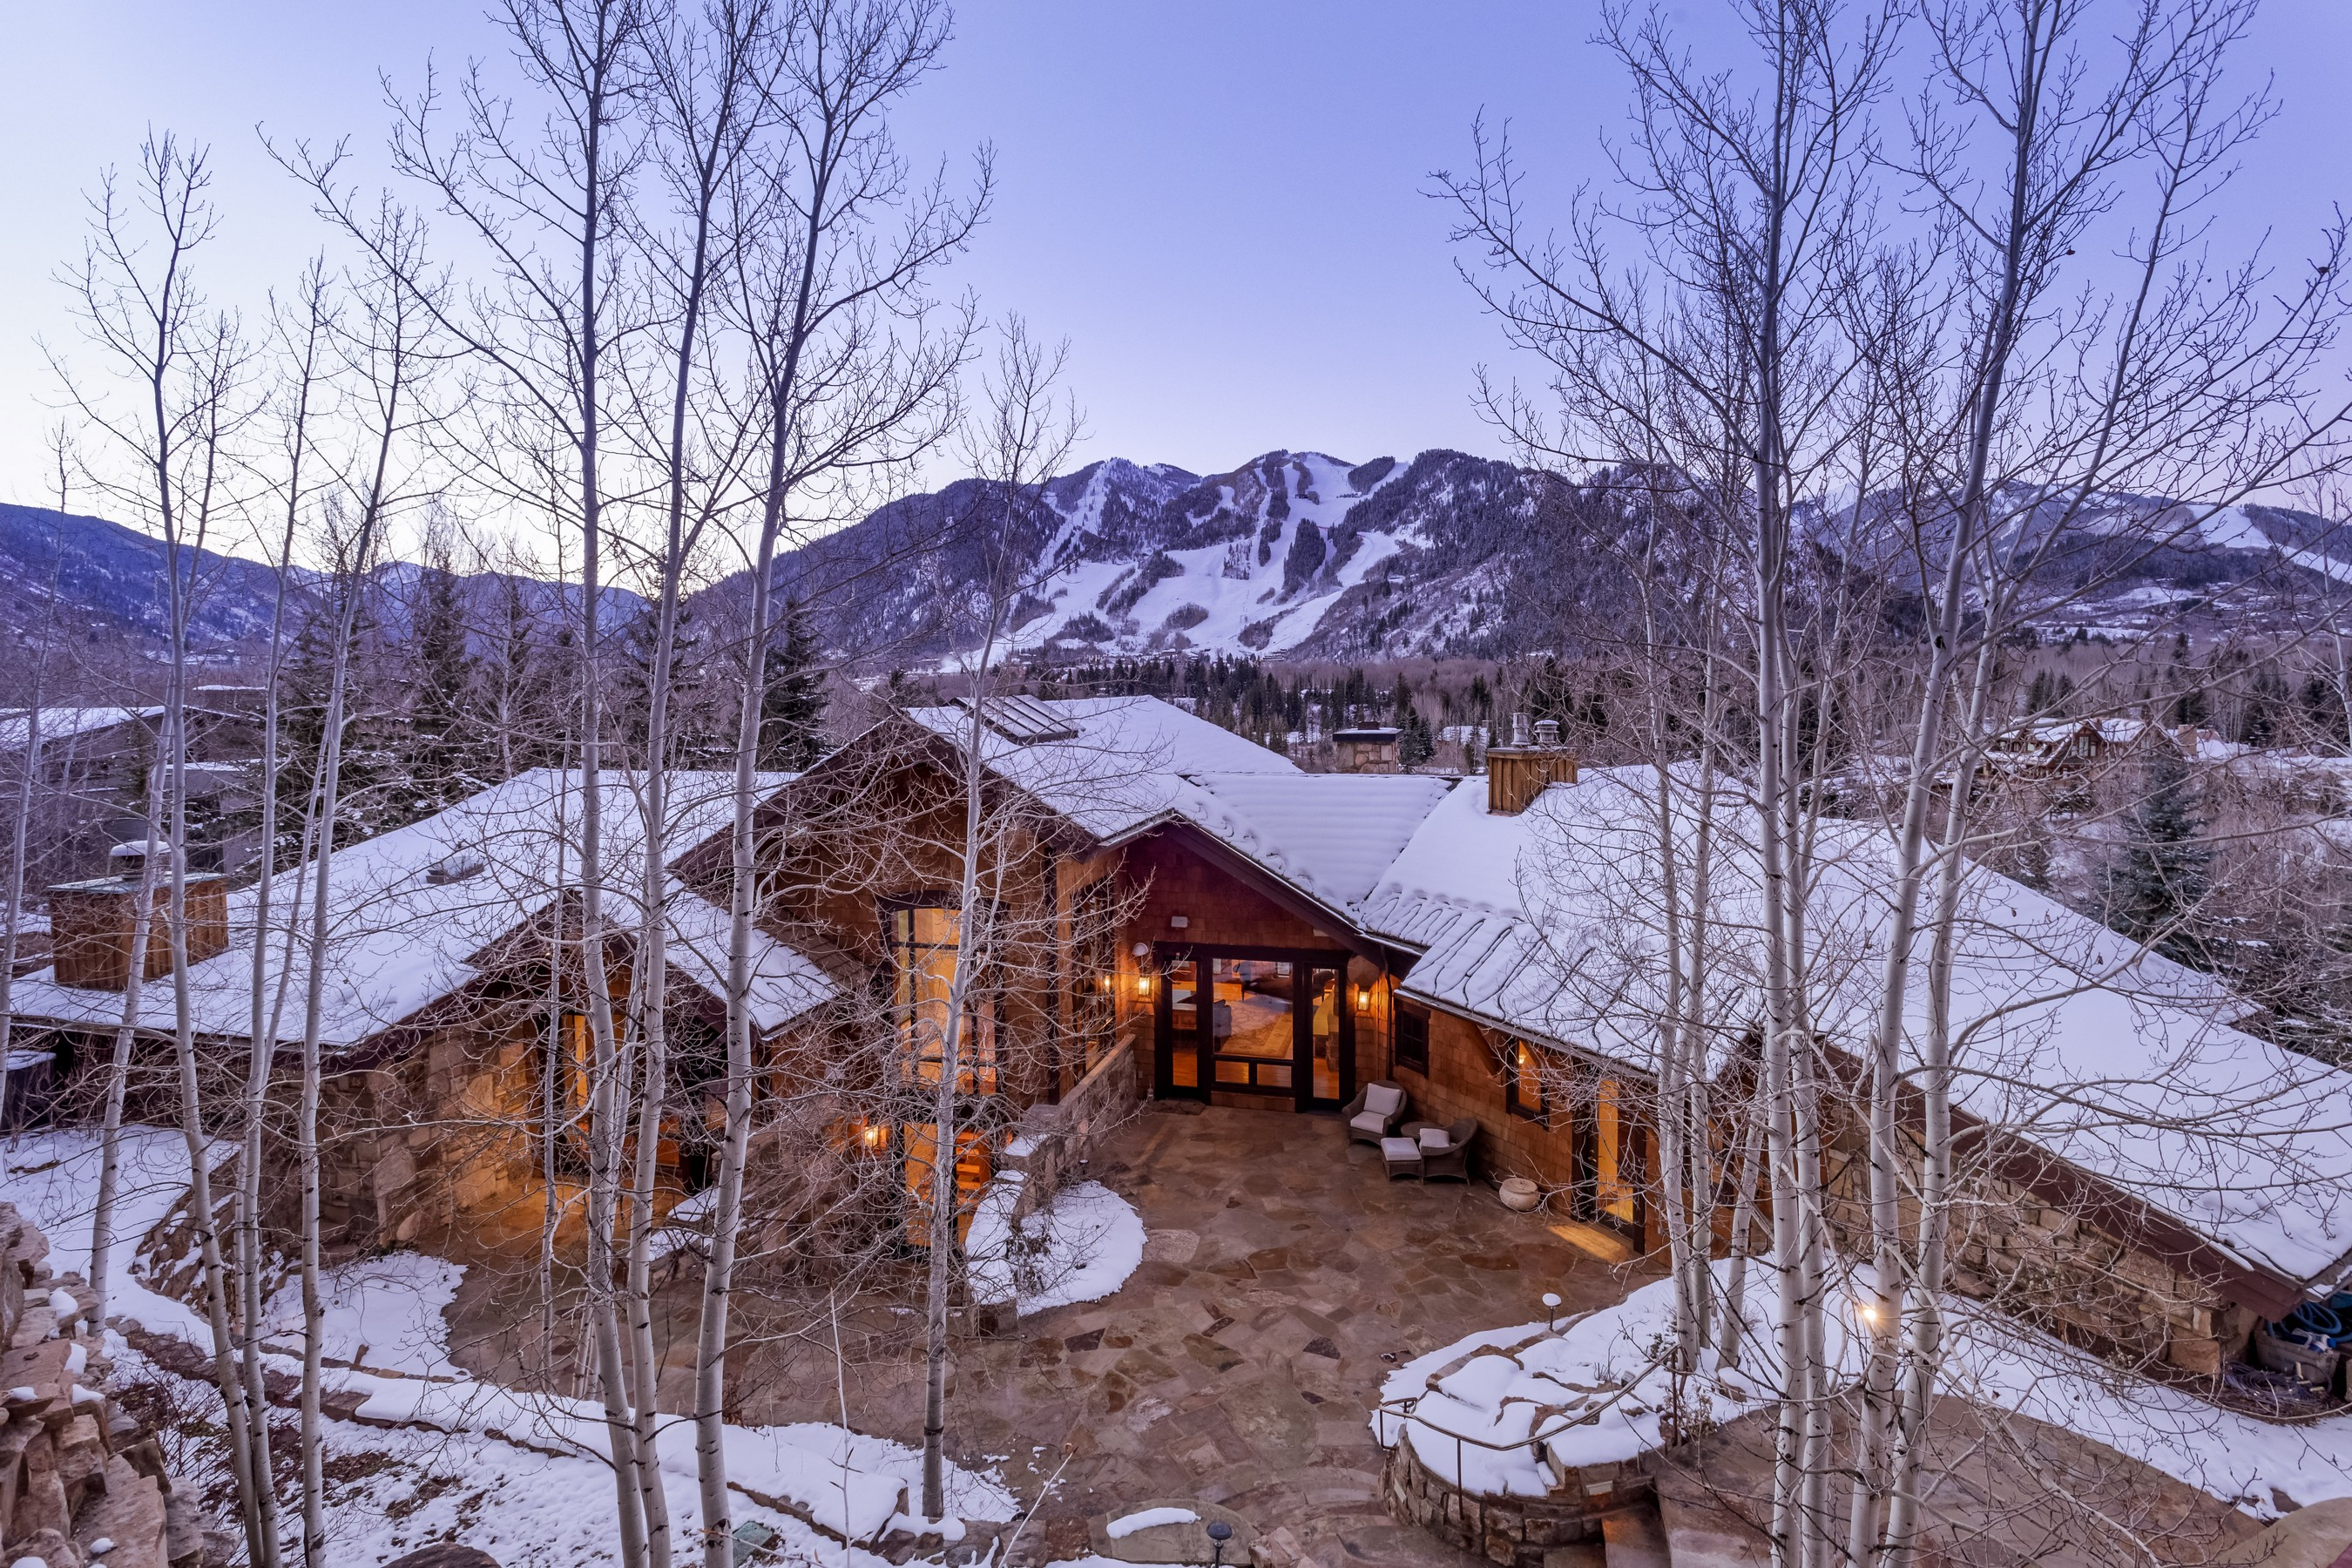 Single Family Home for Sale at Prestigious Willoughby Way 247 Willoughby Way Aspen, Colorado 81611 United States